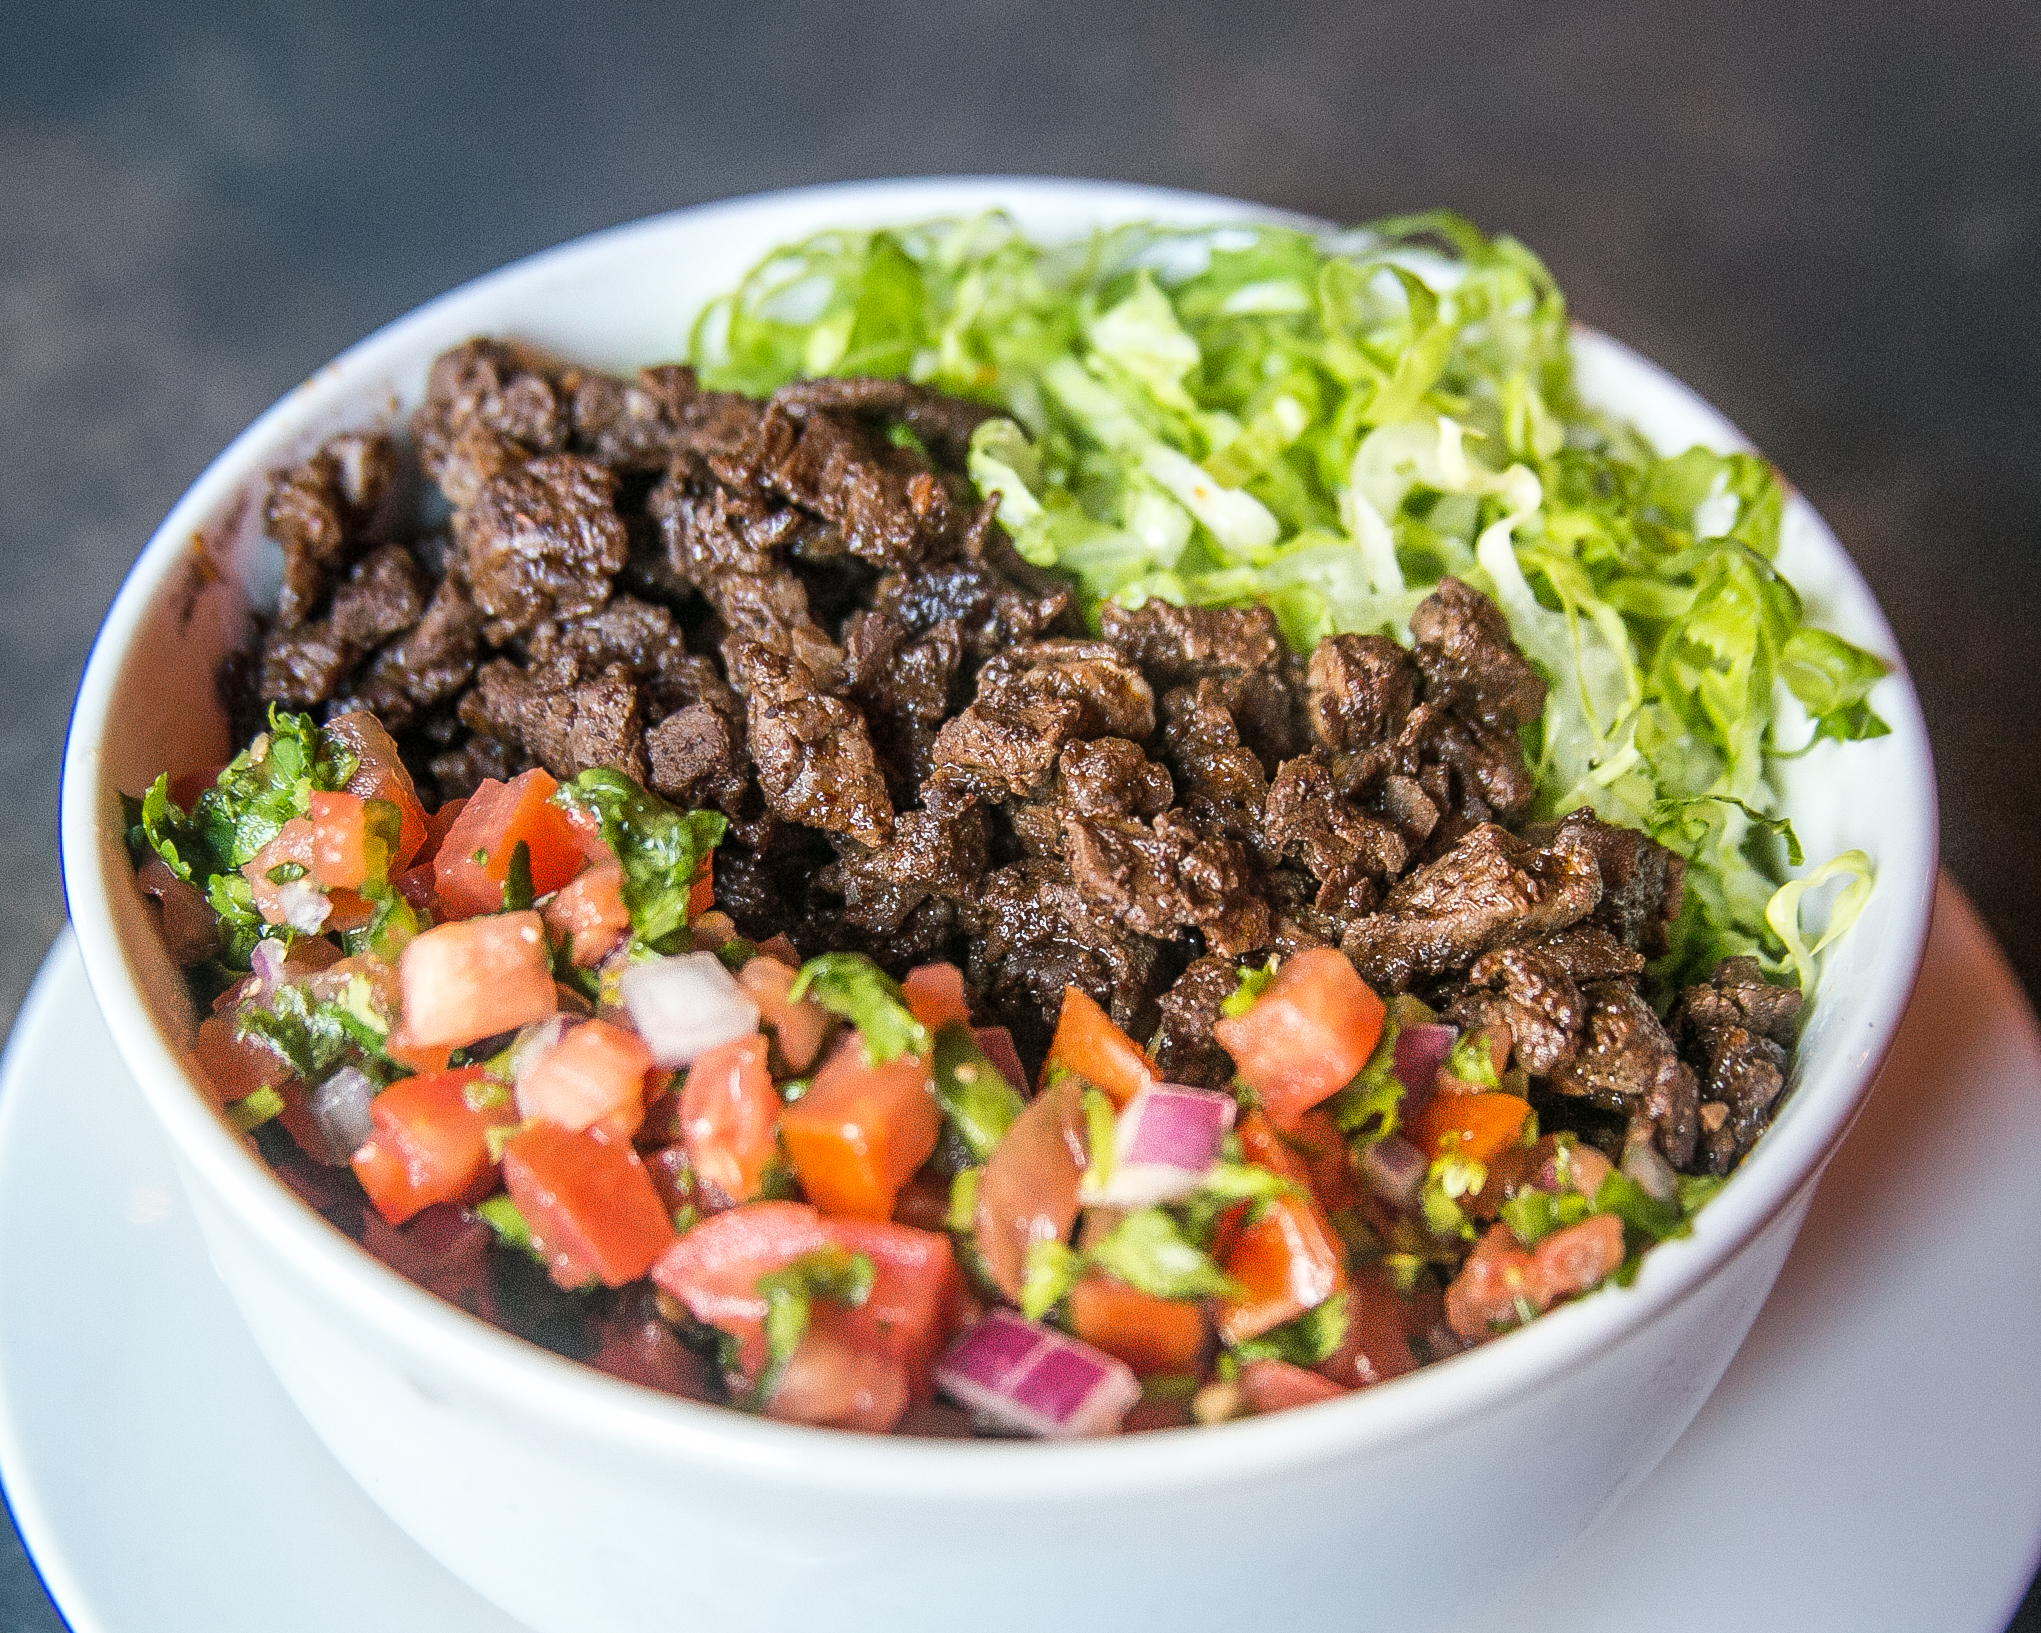 Bushwick Taco Co_Carne Asada Burrito Bowl_native.jpg